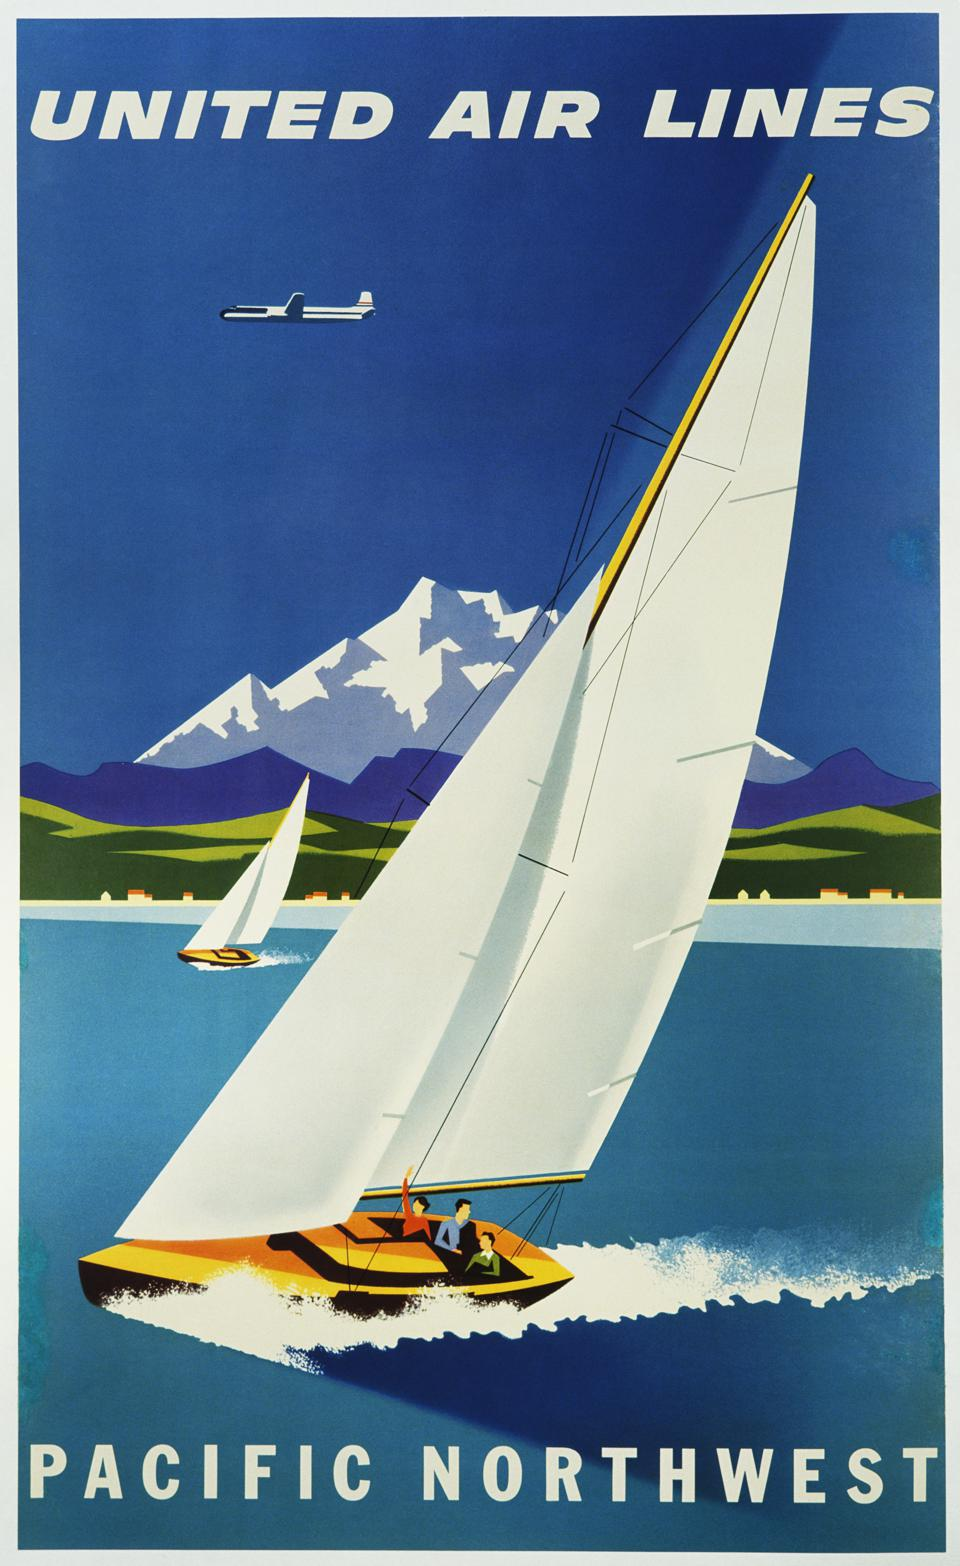 United Air Lines - Pacific Northwest Travel Poster by Joseph Binder